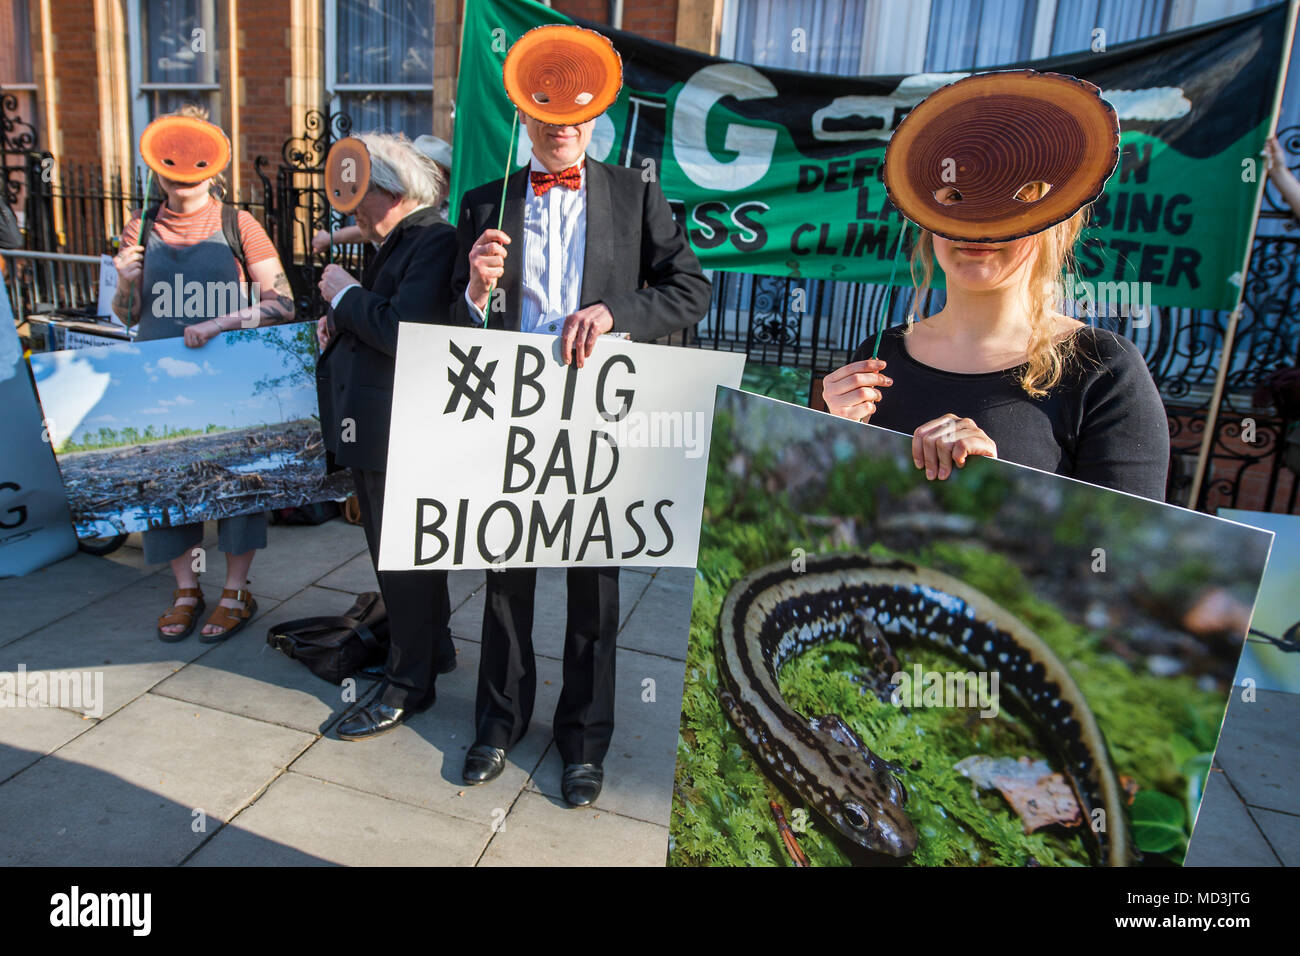 London, UK. 18th April, 2018. Counter Demo to the World's Largest Biomass Conference, in the Landmark hotel, Marylebone, London. They hope to bring greater scrutiny to a practice that's turning forests into pellets to supply the UK energy market. The protest was organised by Biofuelwatch who believe the practice is destroying the environment and reducing biodiversity. Credit: Guy Bell/Alamy Live News - Stock Image